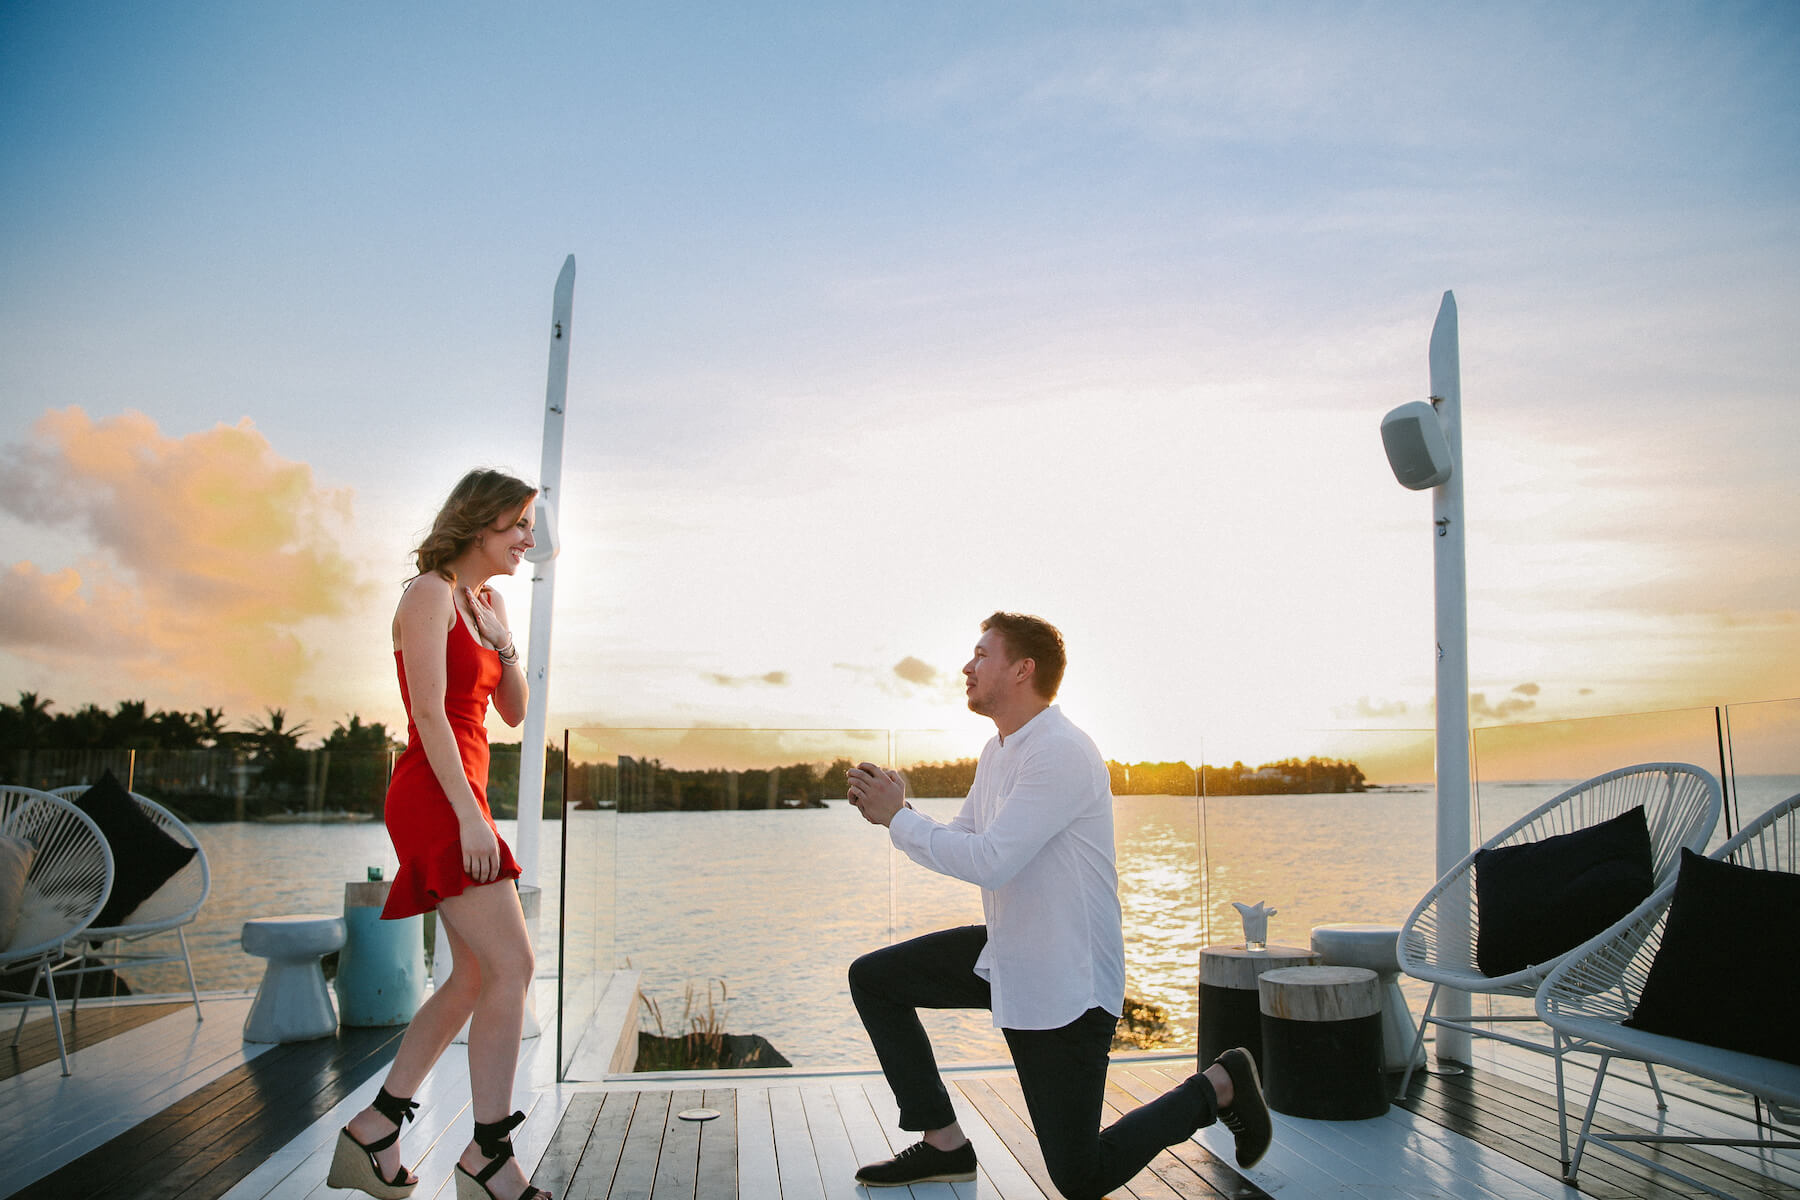 Woman wearing a red dress is being proposed to on a doc in Mauritius